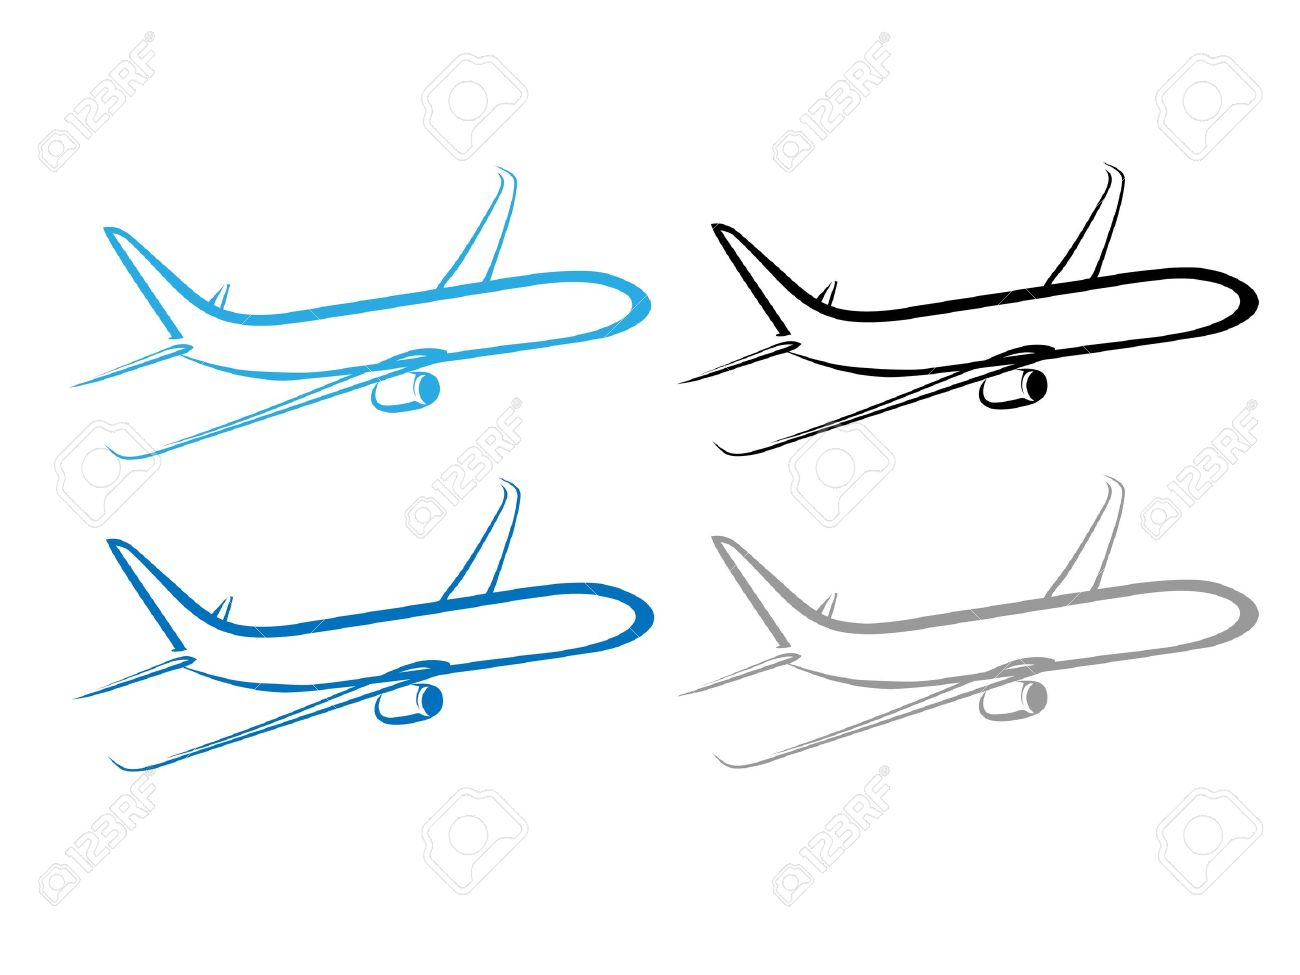 stylized airplane flying airplane design royalty free cliparts